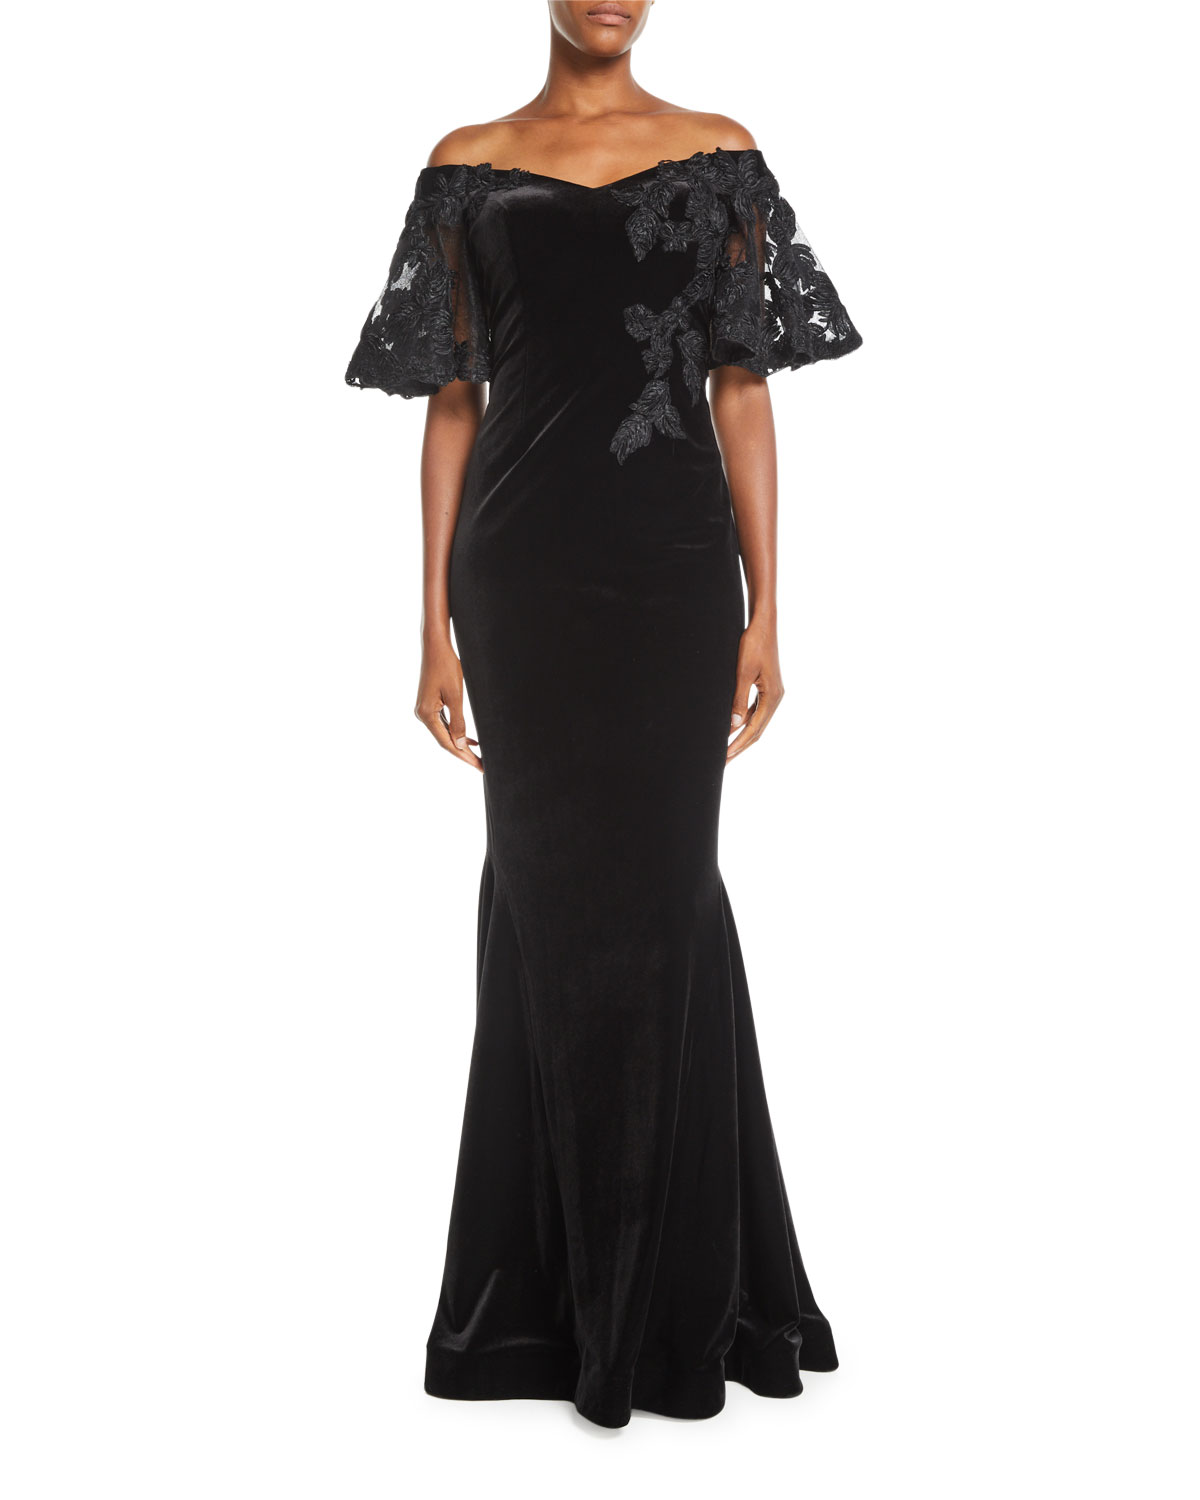 Off-the-Shoulder Velvet Mermaid Gown w/ Embroidery